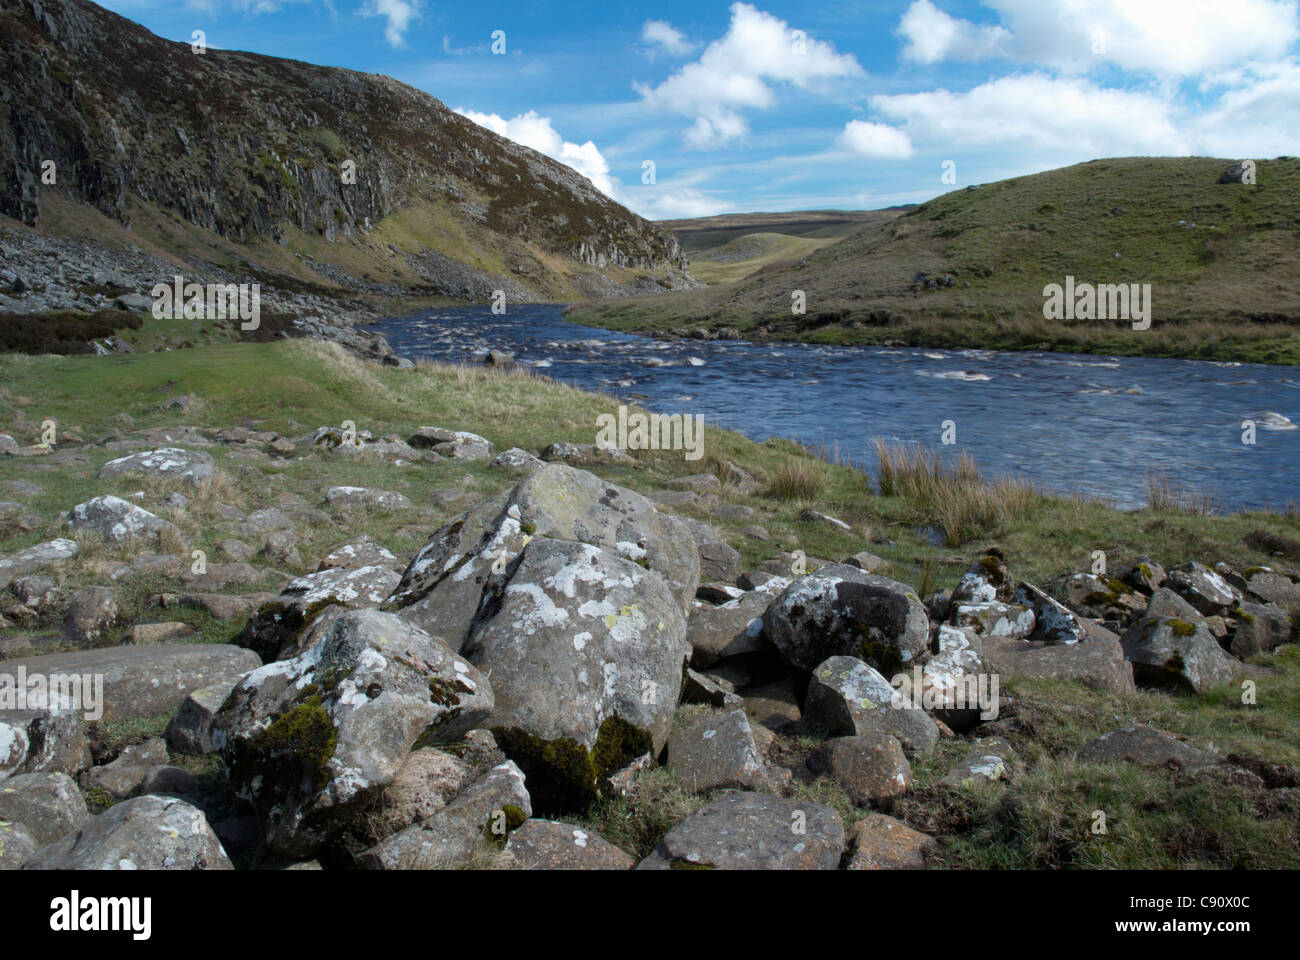 Upper Teesdale River Tees at Falcon Clints below Cauldron Snout and Cow Green reservoir. Durham, England - Stock Image